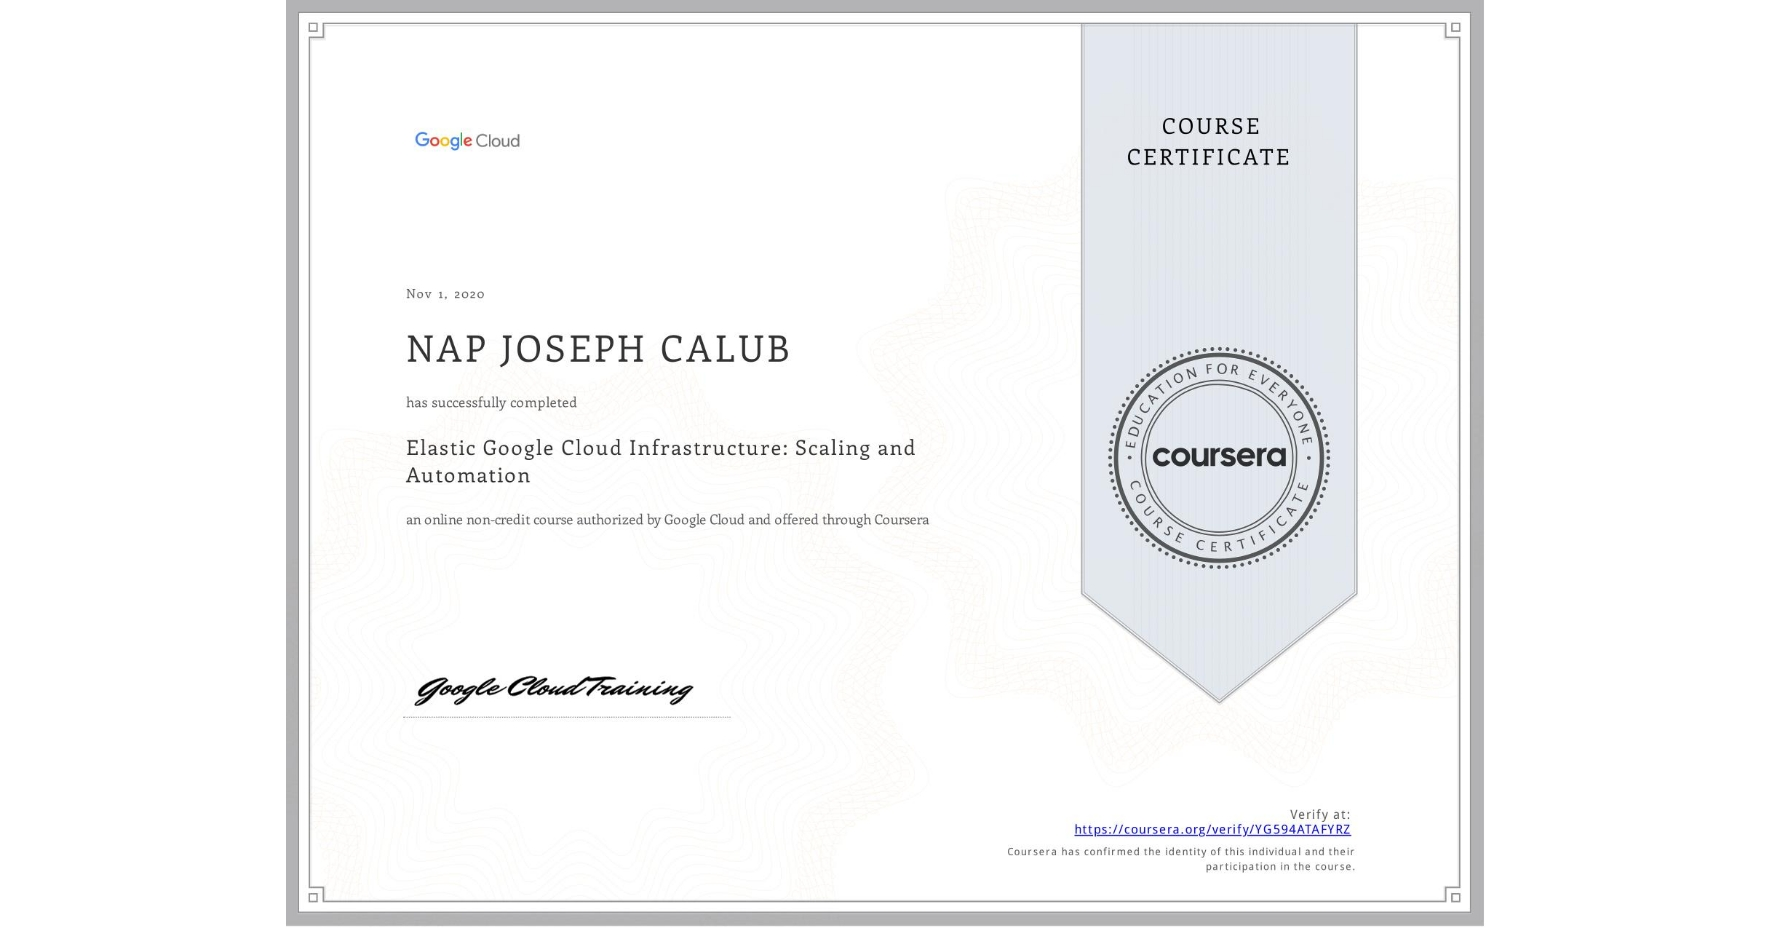 View certificate for NAP JOSEPH  CALUB, Elastic Google Cloud Infrastructure: Scaling and Automation, an online non-credit course authorized by Google Cloud and offered through Coursera